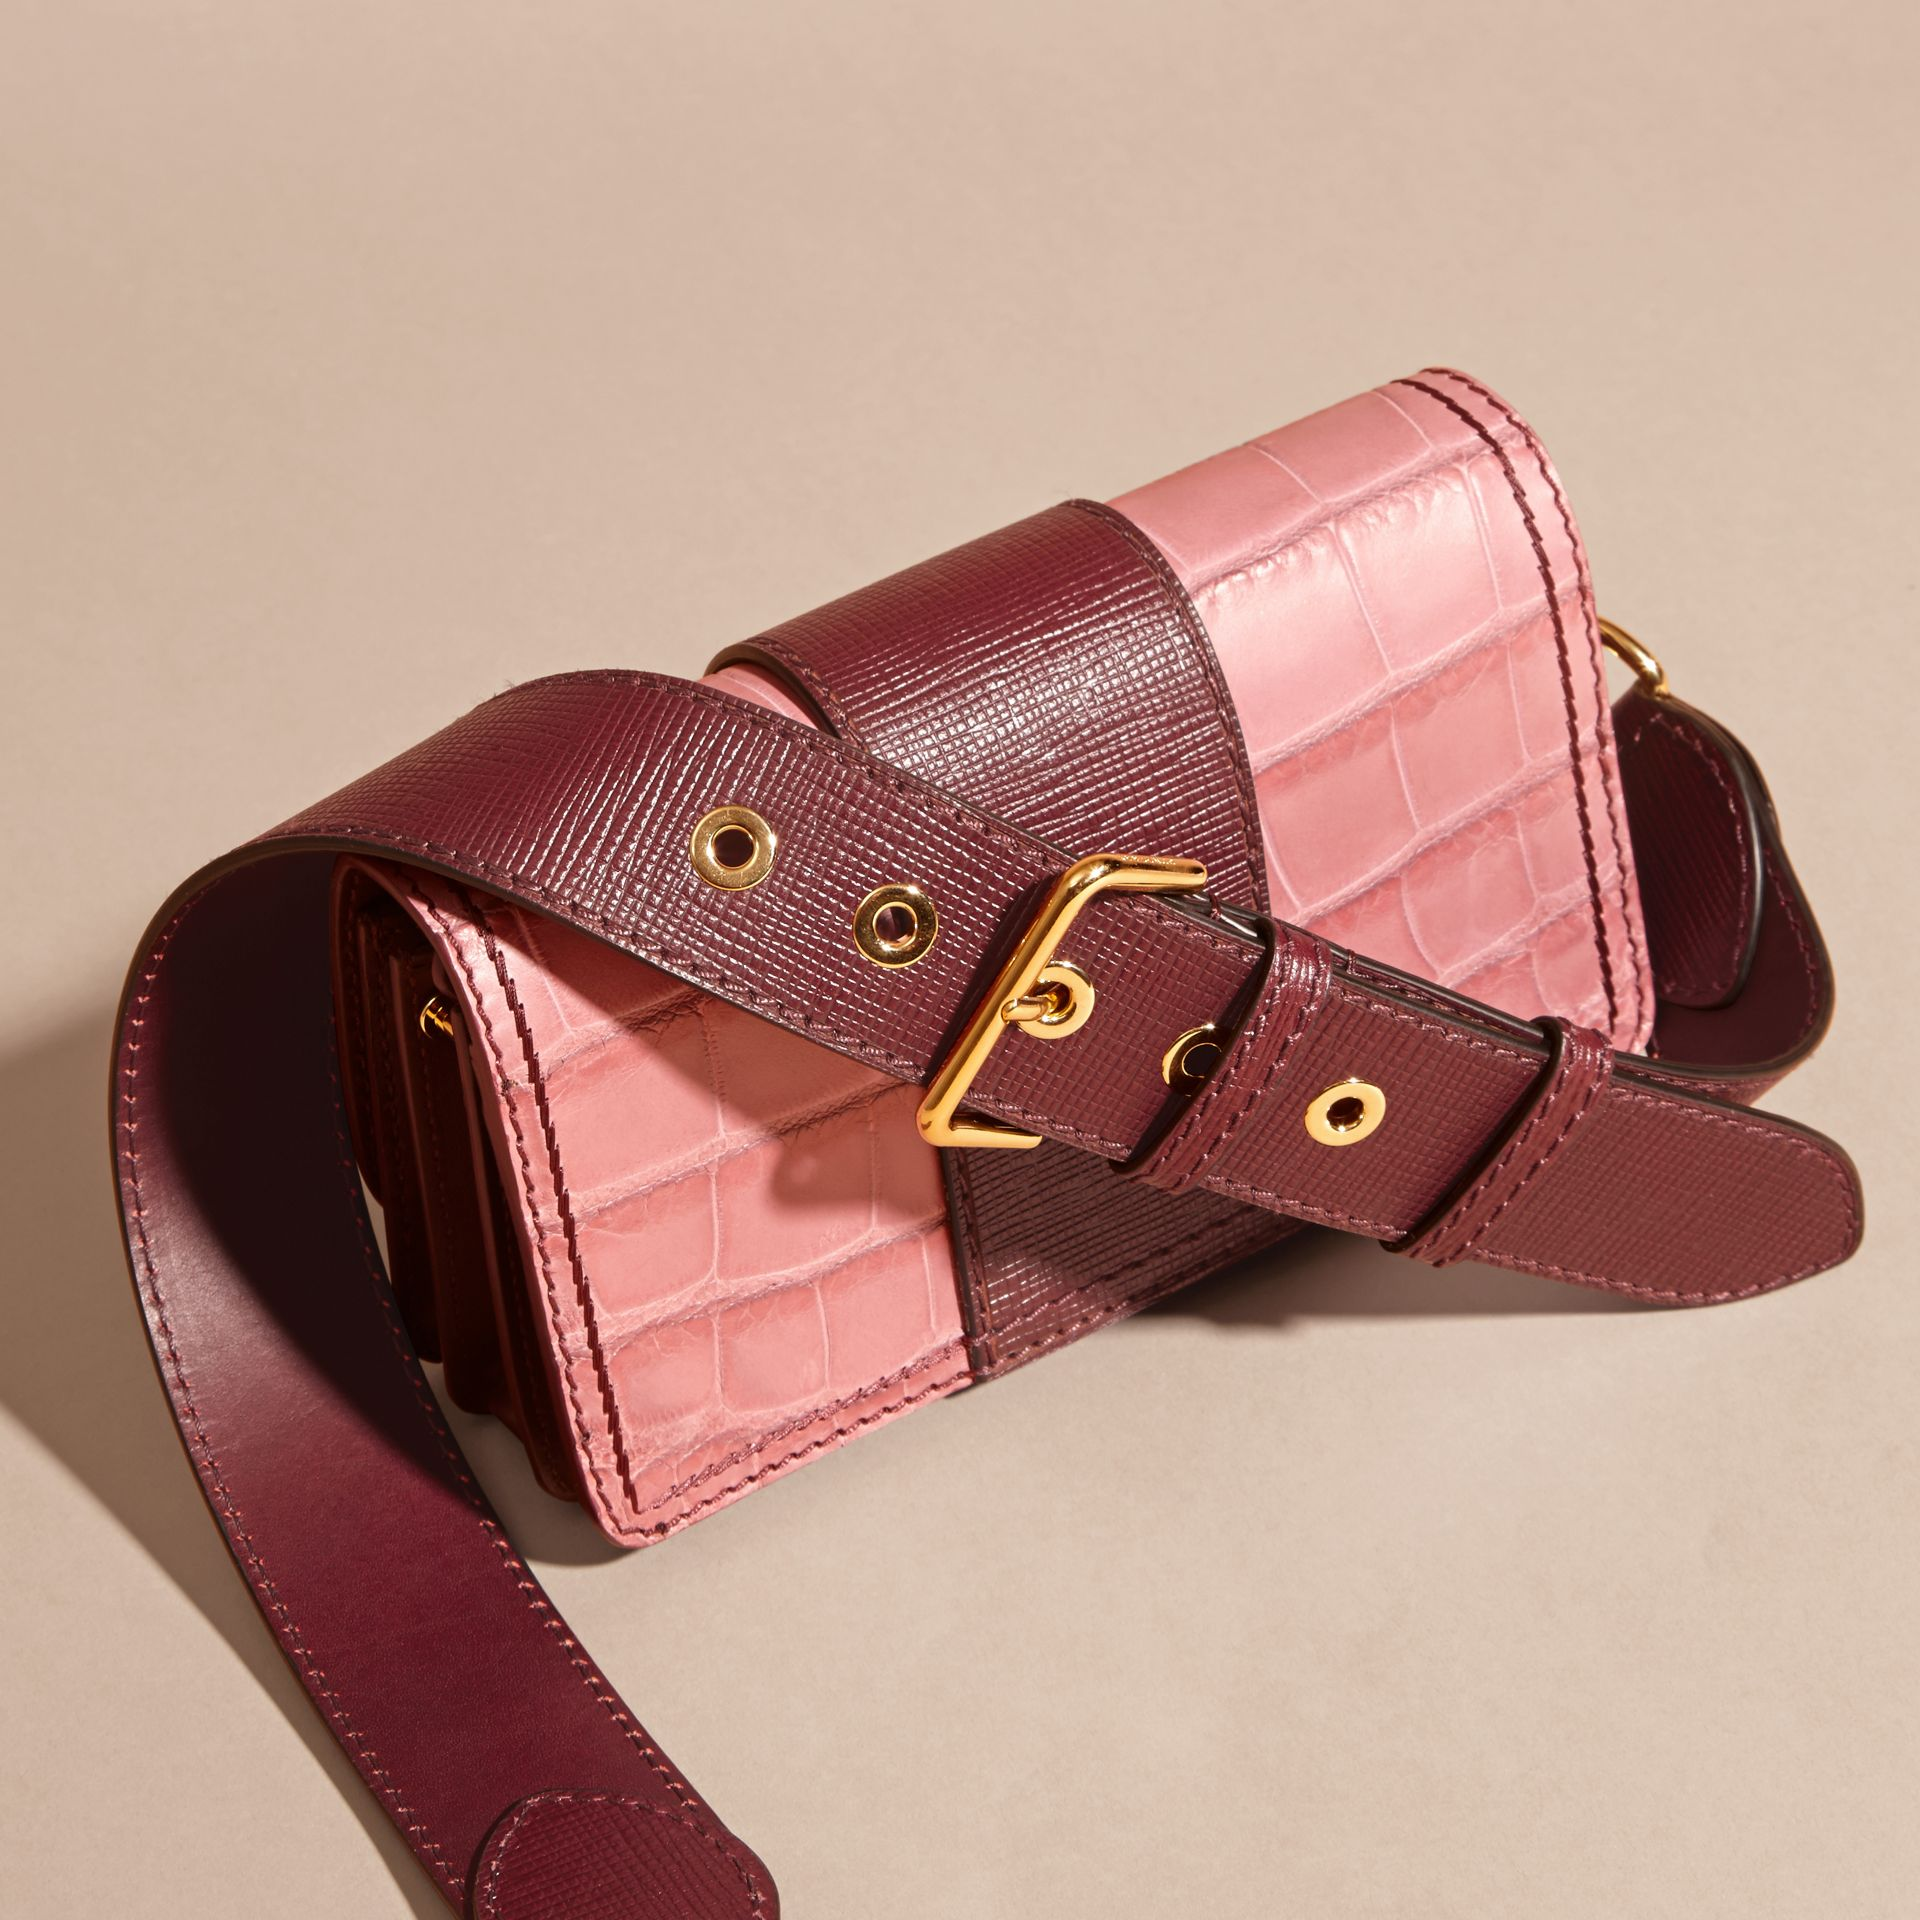 The Small Buckle Bag in Alligator and Leather in Dusky Pink/ Burgundy - Women | Burberry United States - gallery image 5